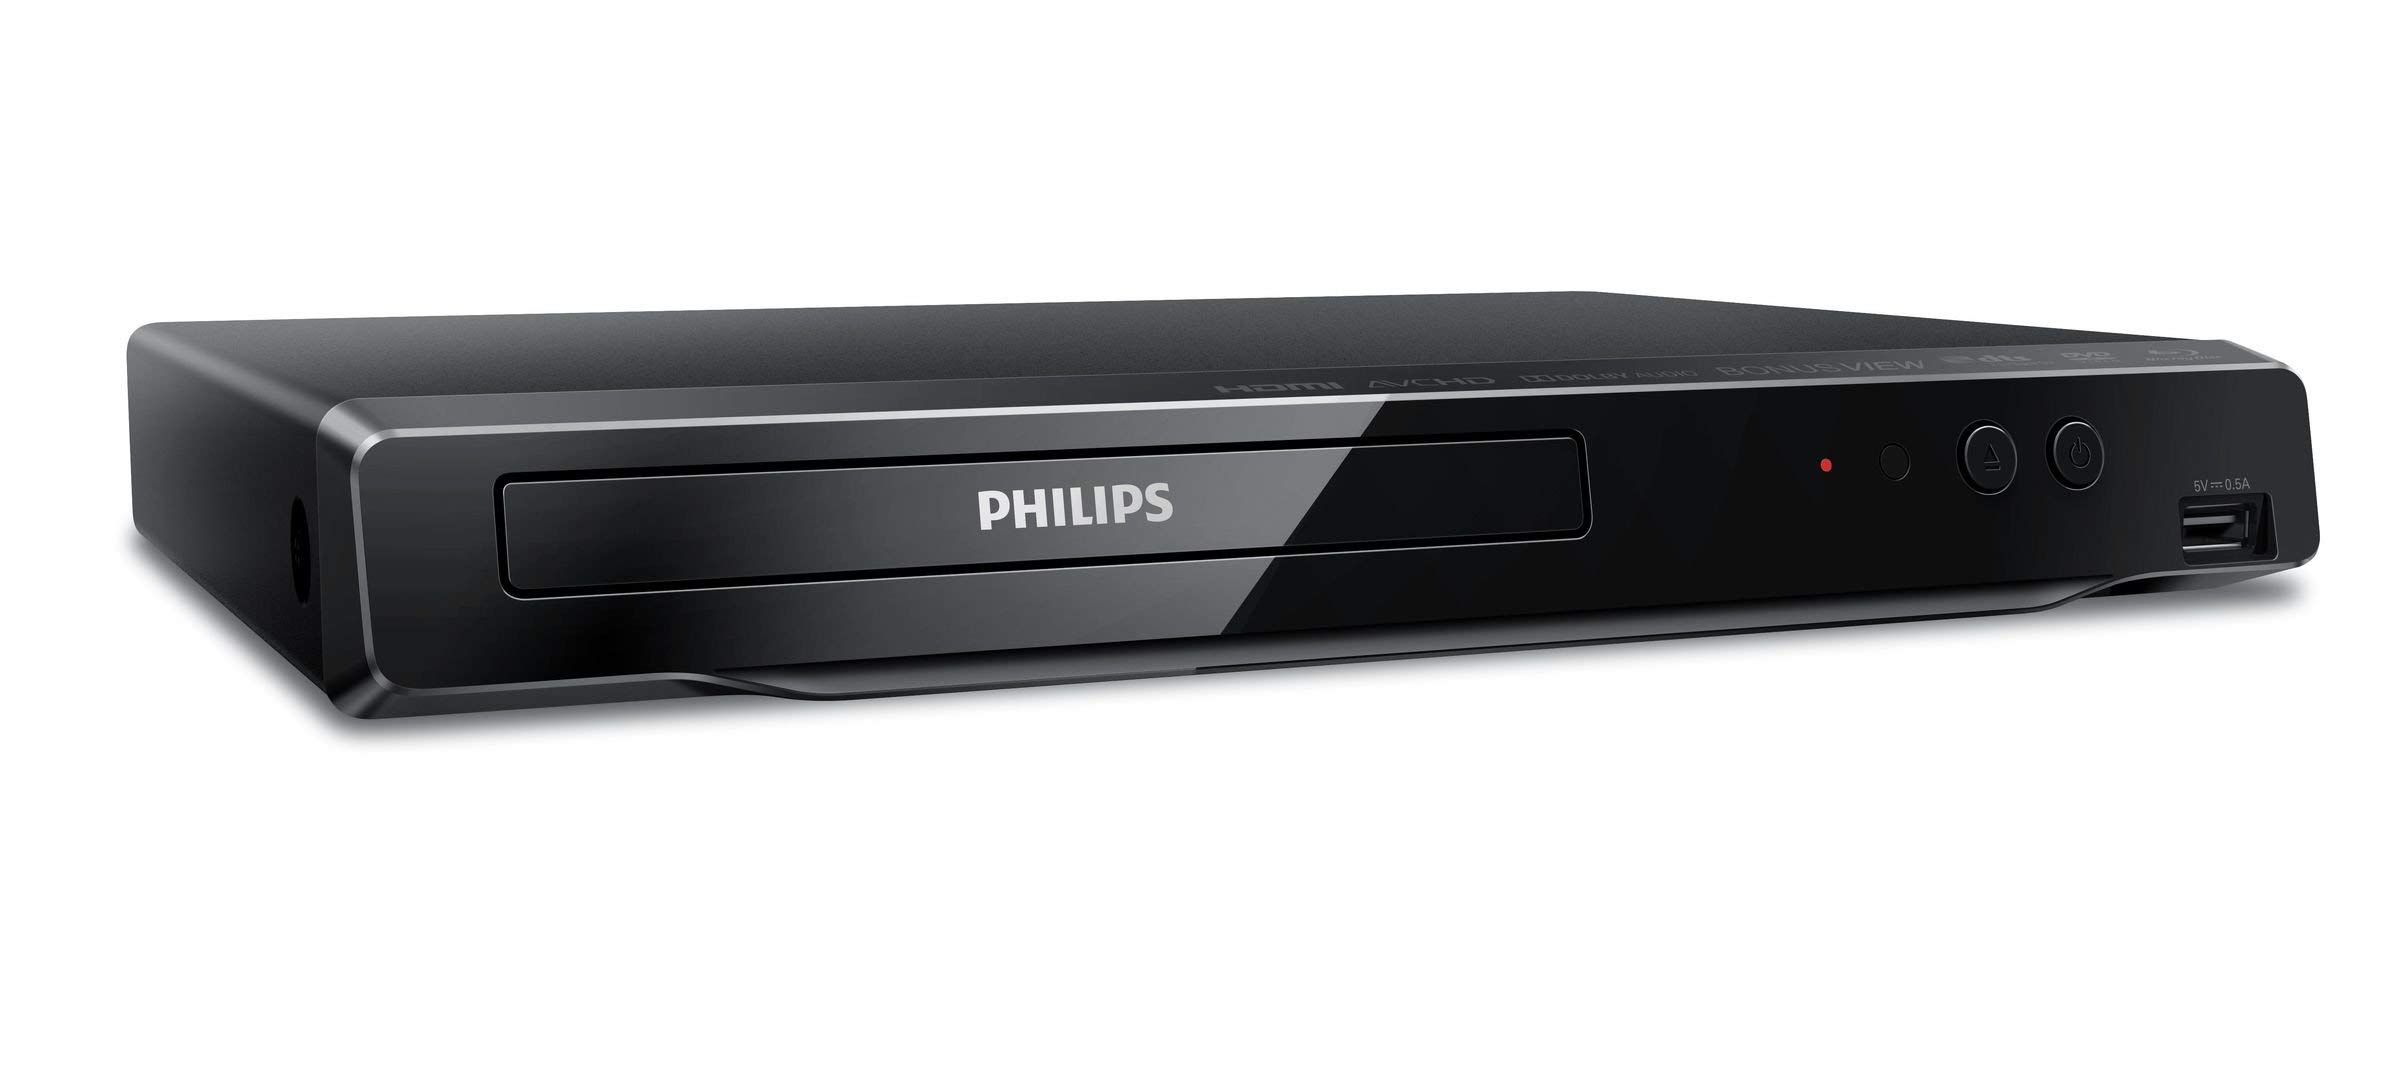 Philips 4K UHD Upconversion Blu-Ray DVD Player BDP3502/F7 (Does NOT Play 4K BLU-Rays / ONLY UPCONVERTS Regular BLU-Rays to 4K) (Renewed) by Philips